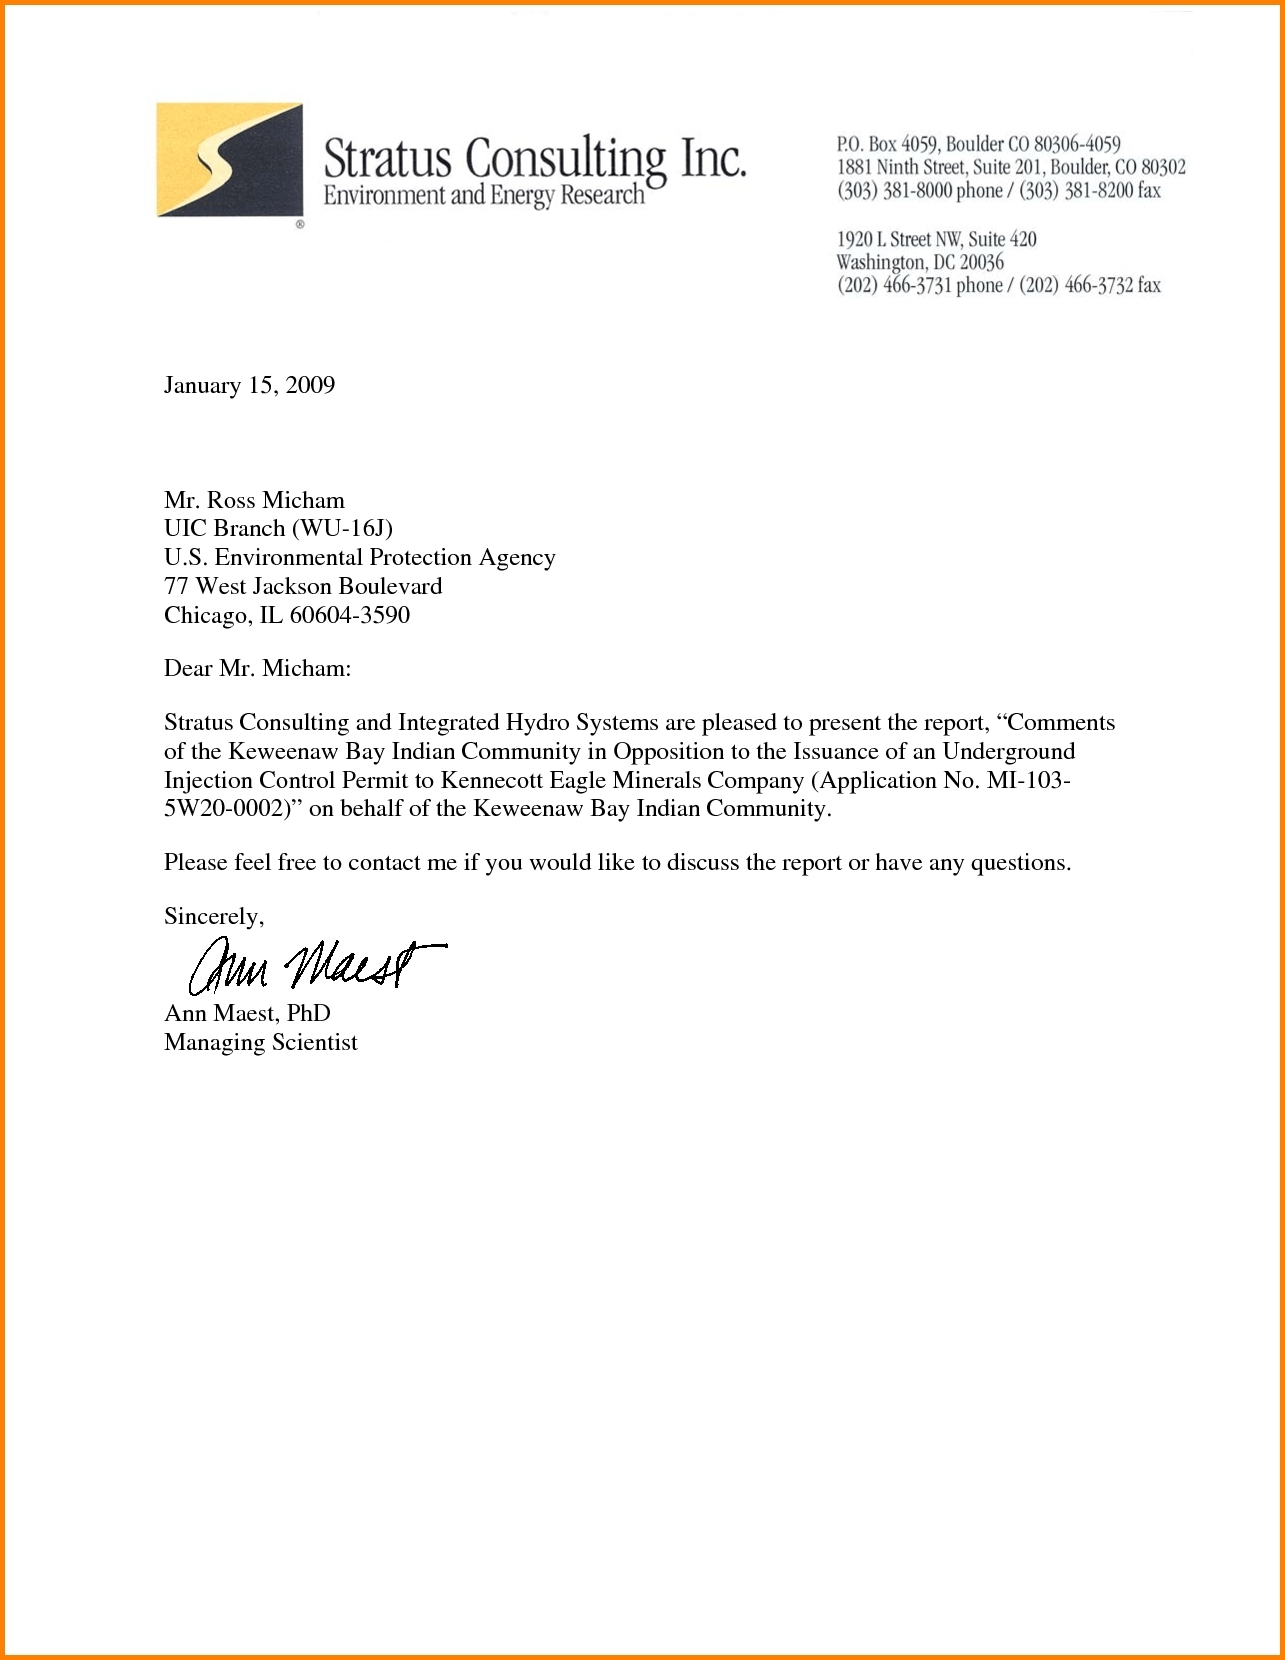 Business Letter Format With Letterhead | Examples And Forms with regard to Formal Business Letter Format With Letterhead 22374